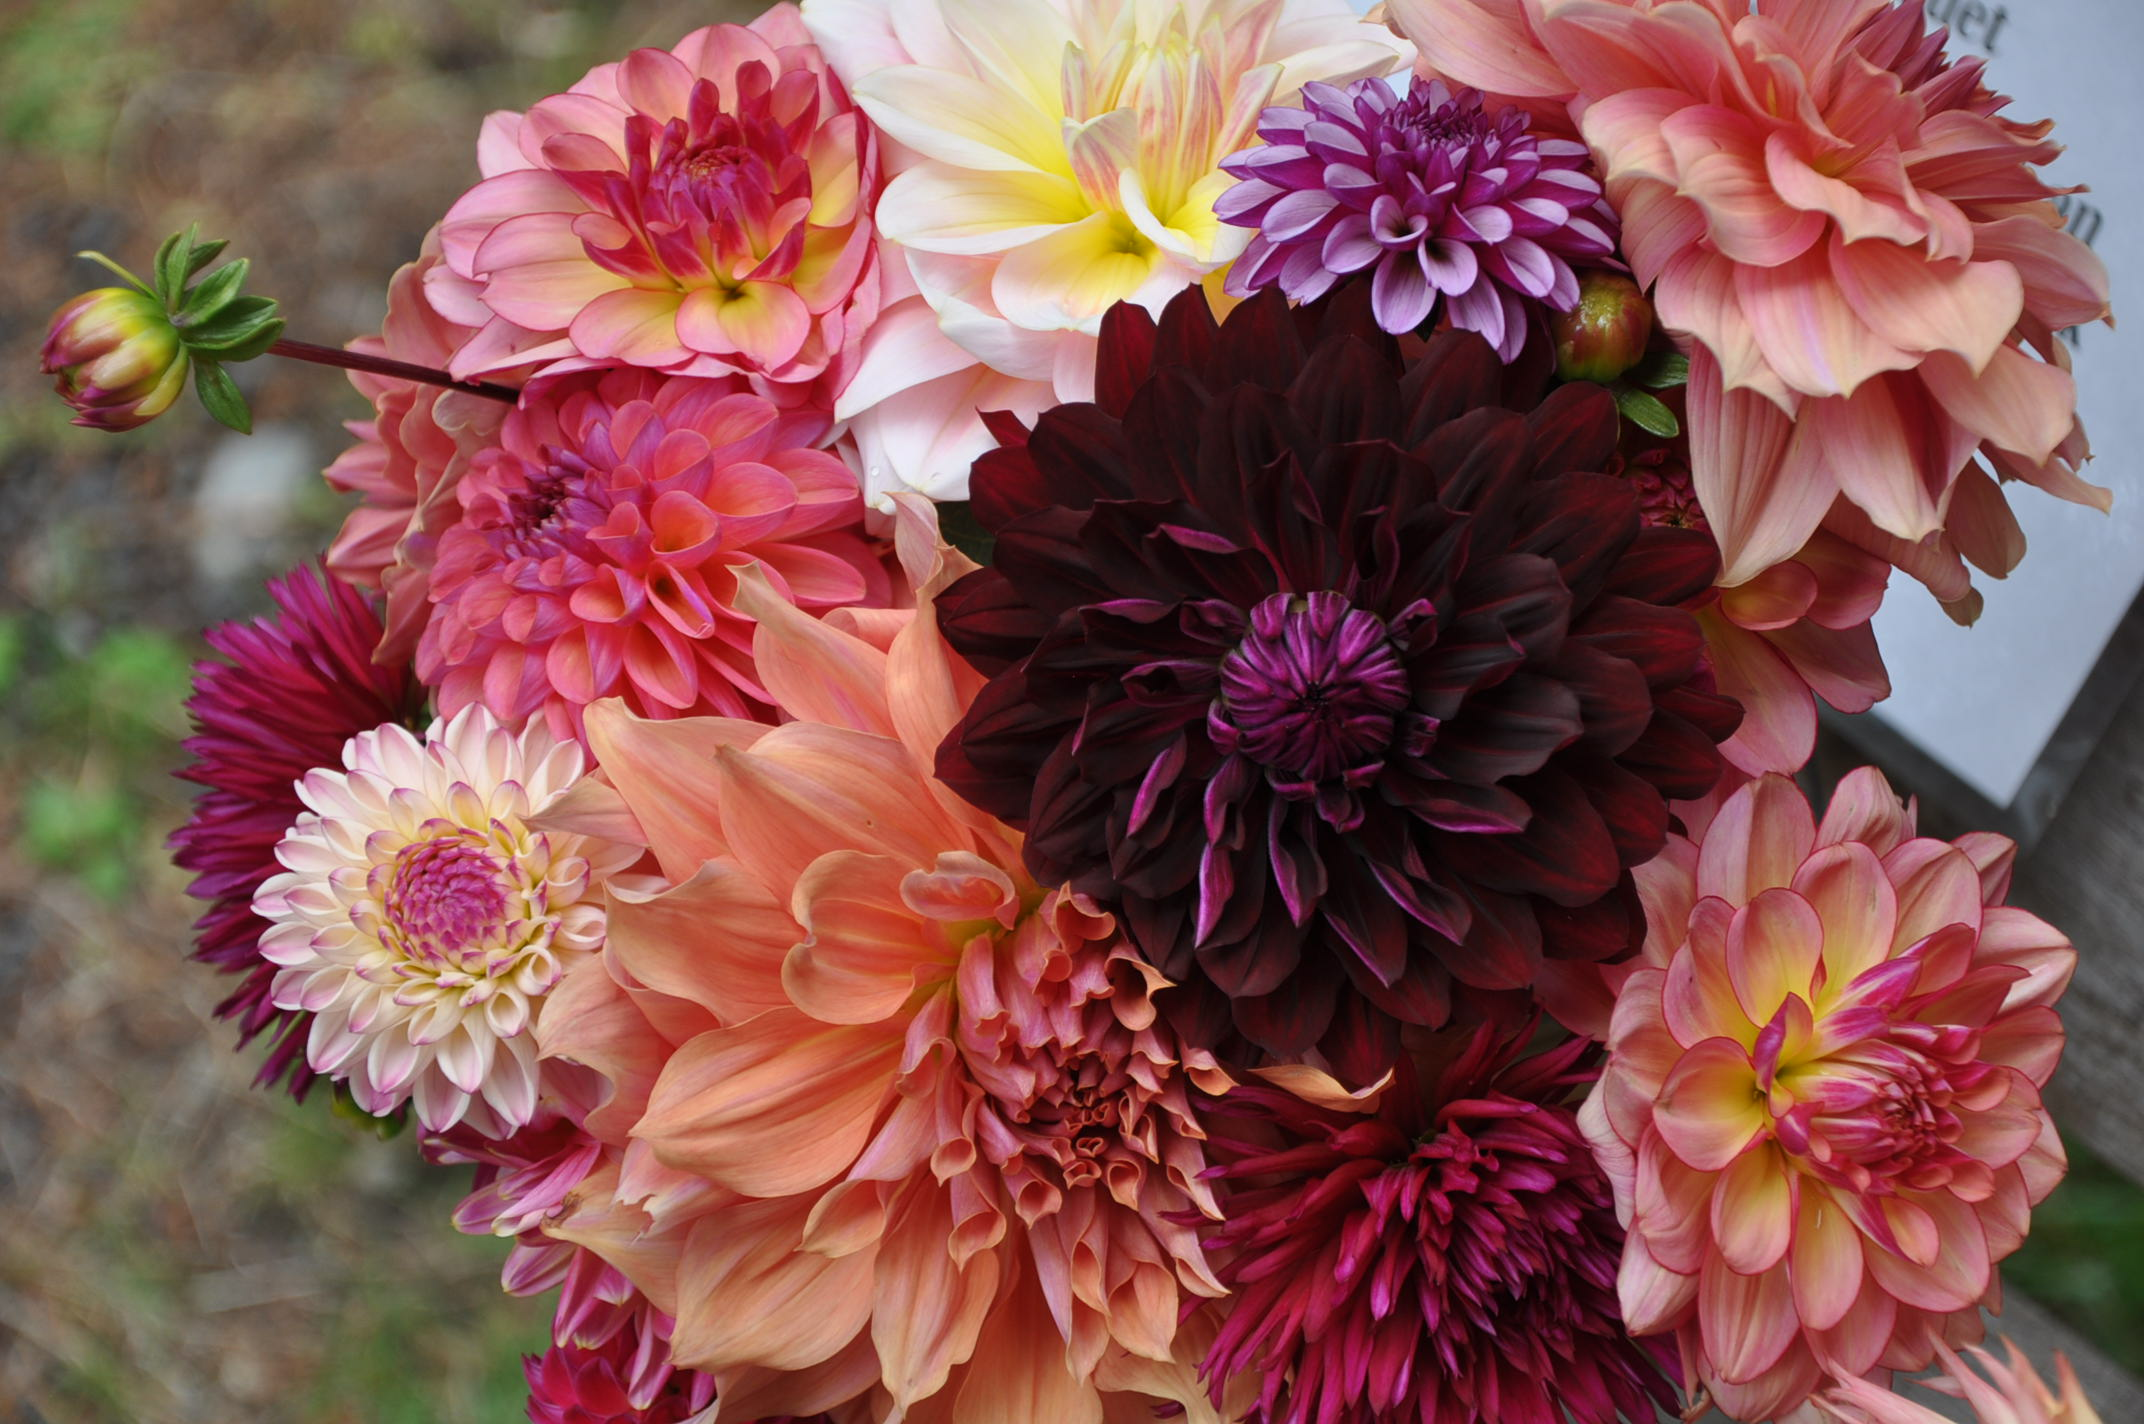 A dahlia cut flower wedding bouquet featuring corals, deep purples, peaches, oranges and pinks.